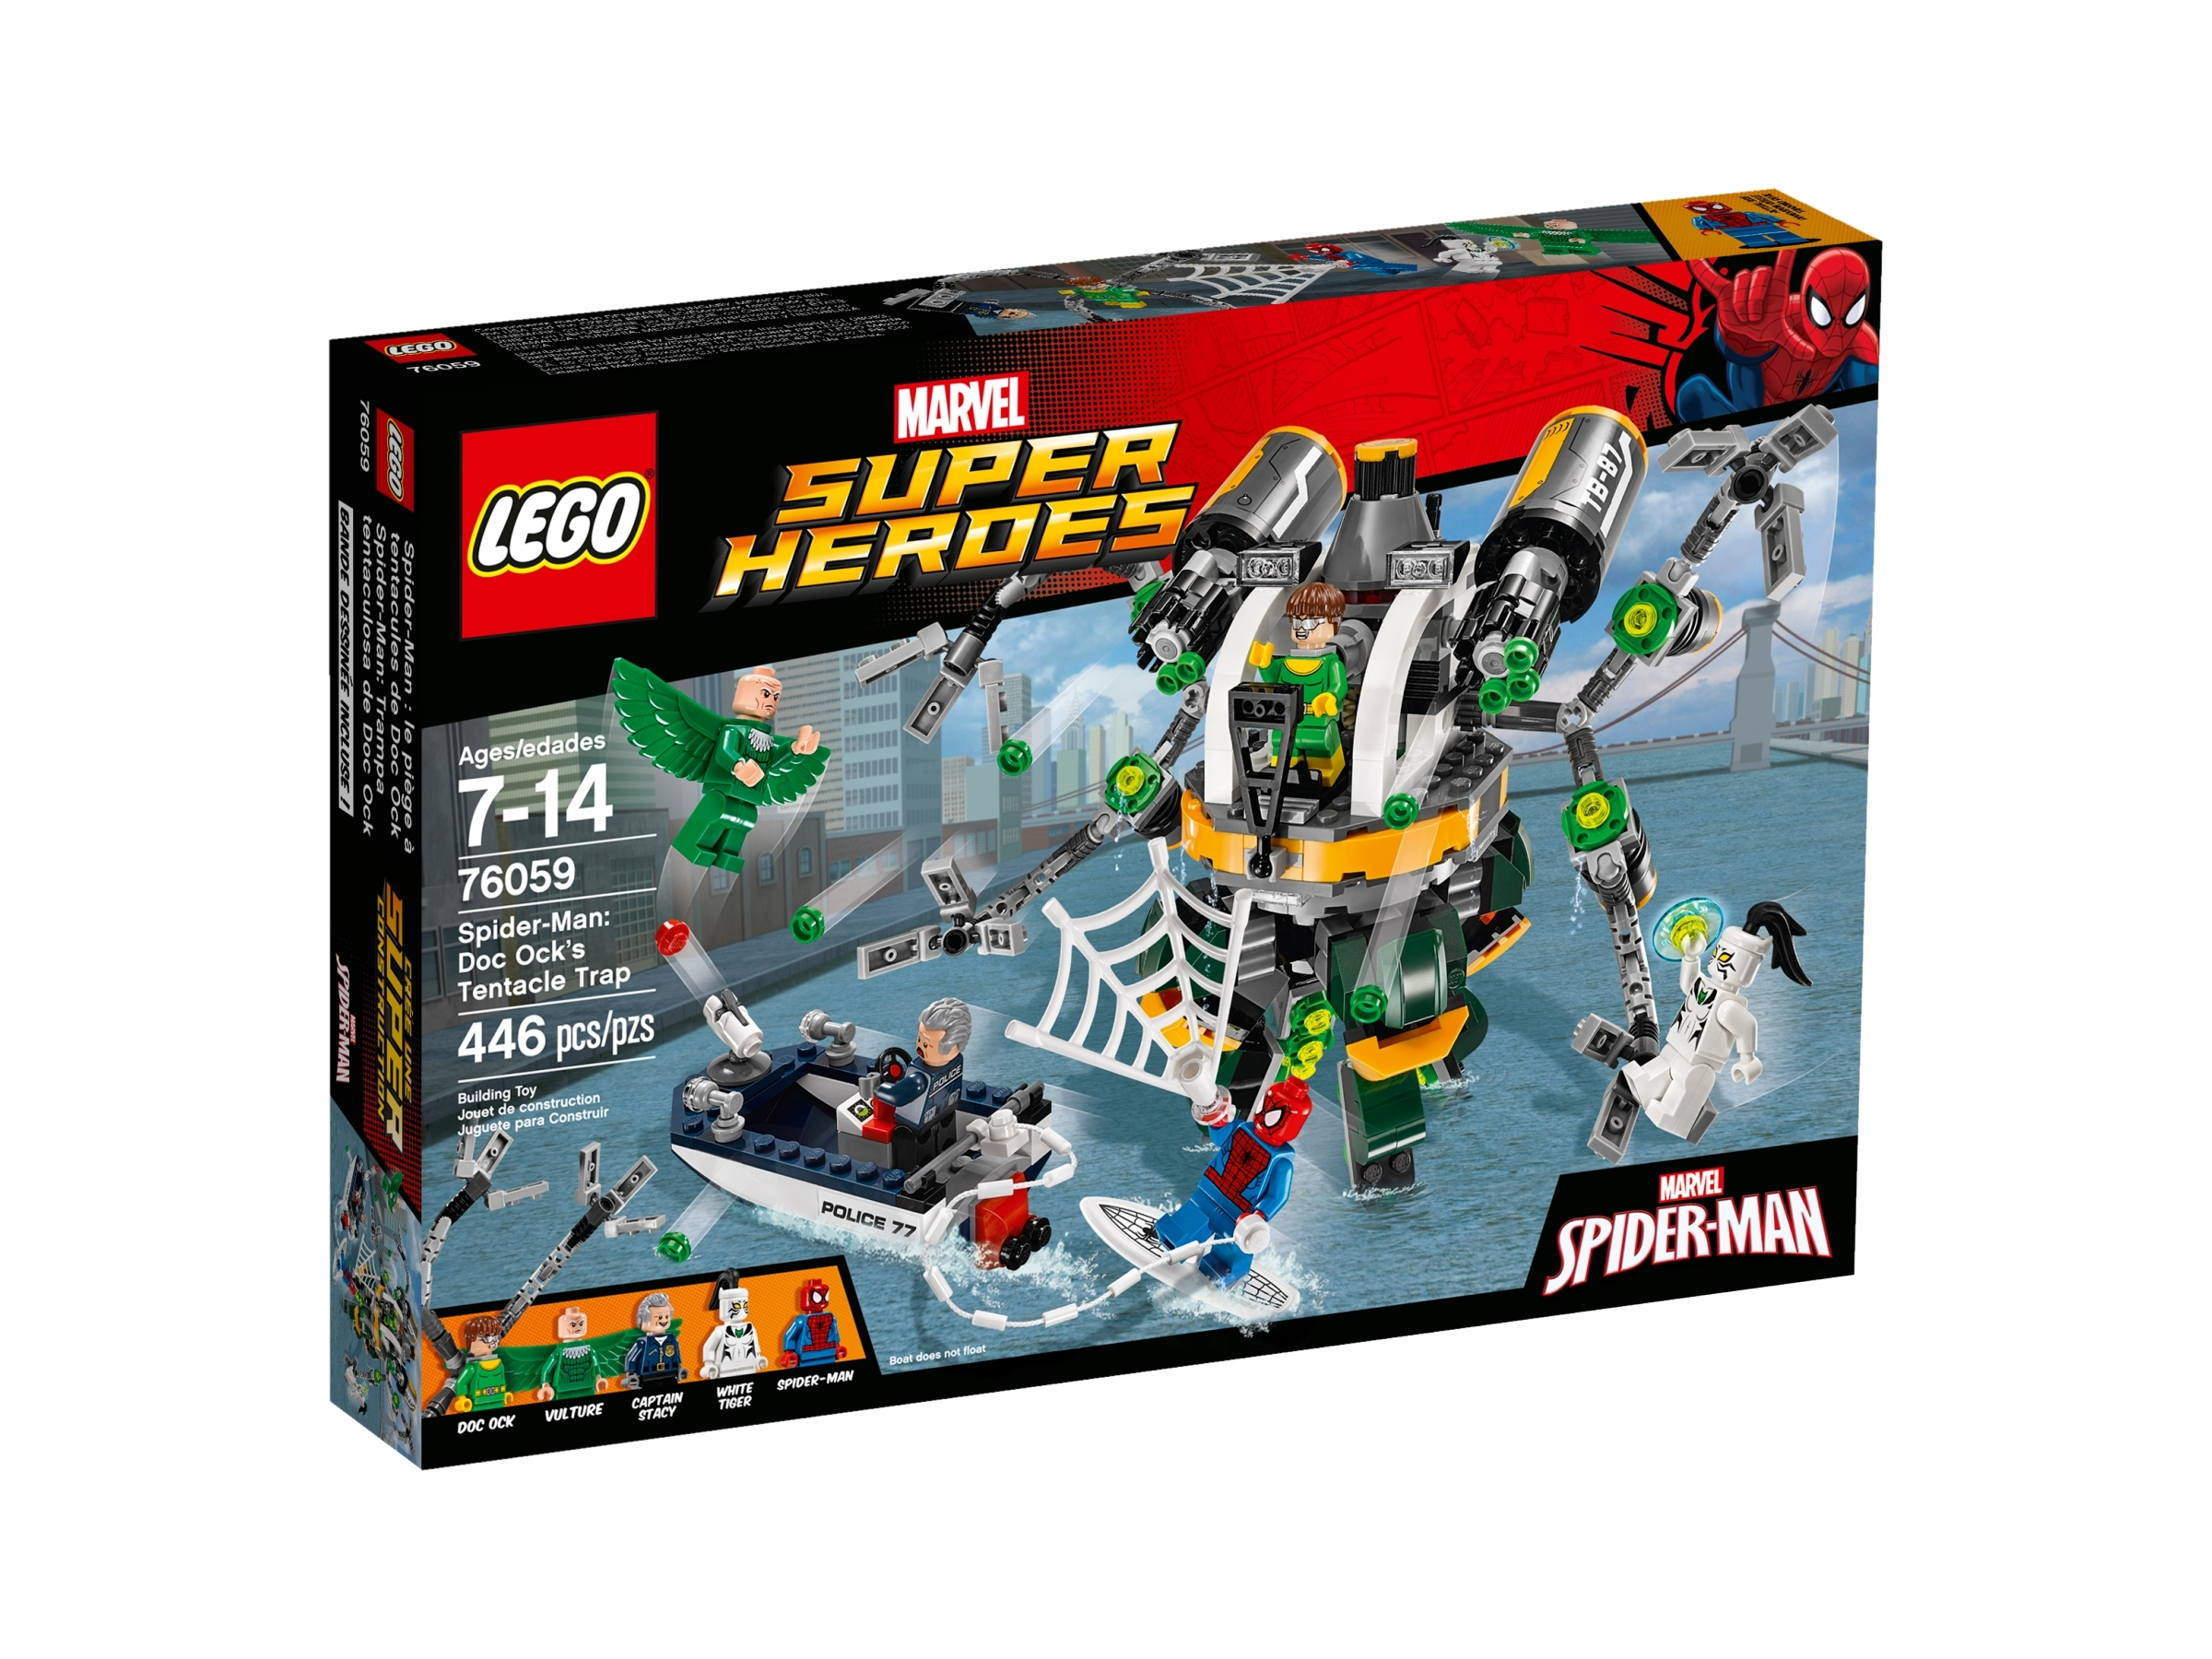 New Genuine LEGO Vulture Marvel Super Heroes 76059